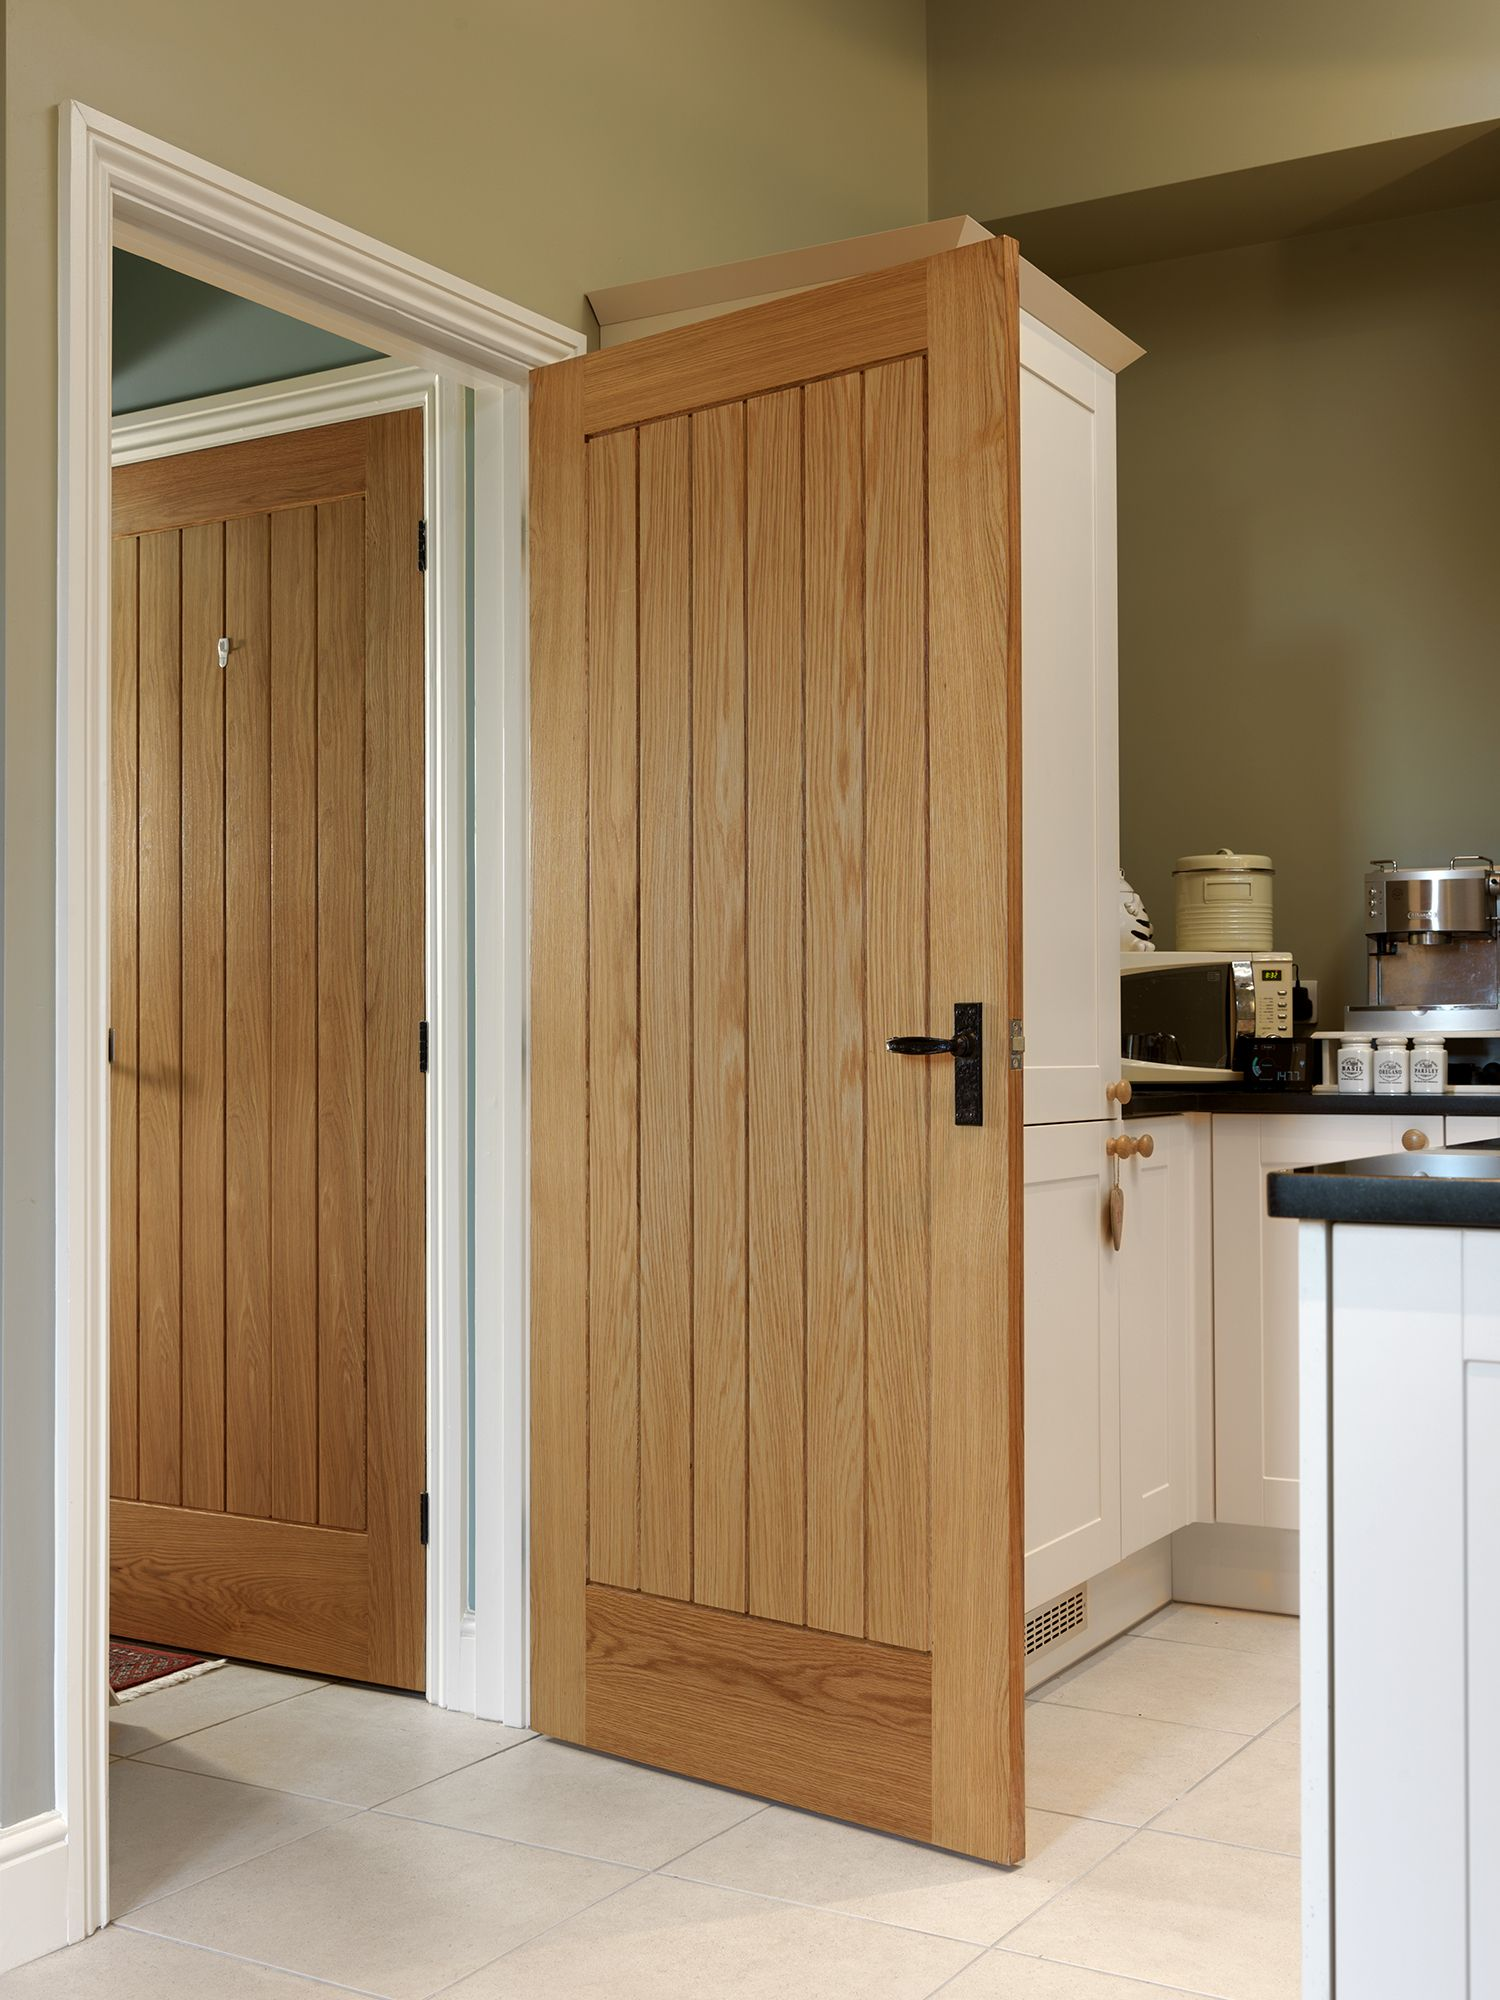 Cottage Style Boarded Oak Internal Doors Are Popular For Both